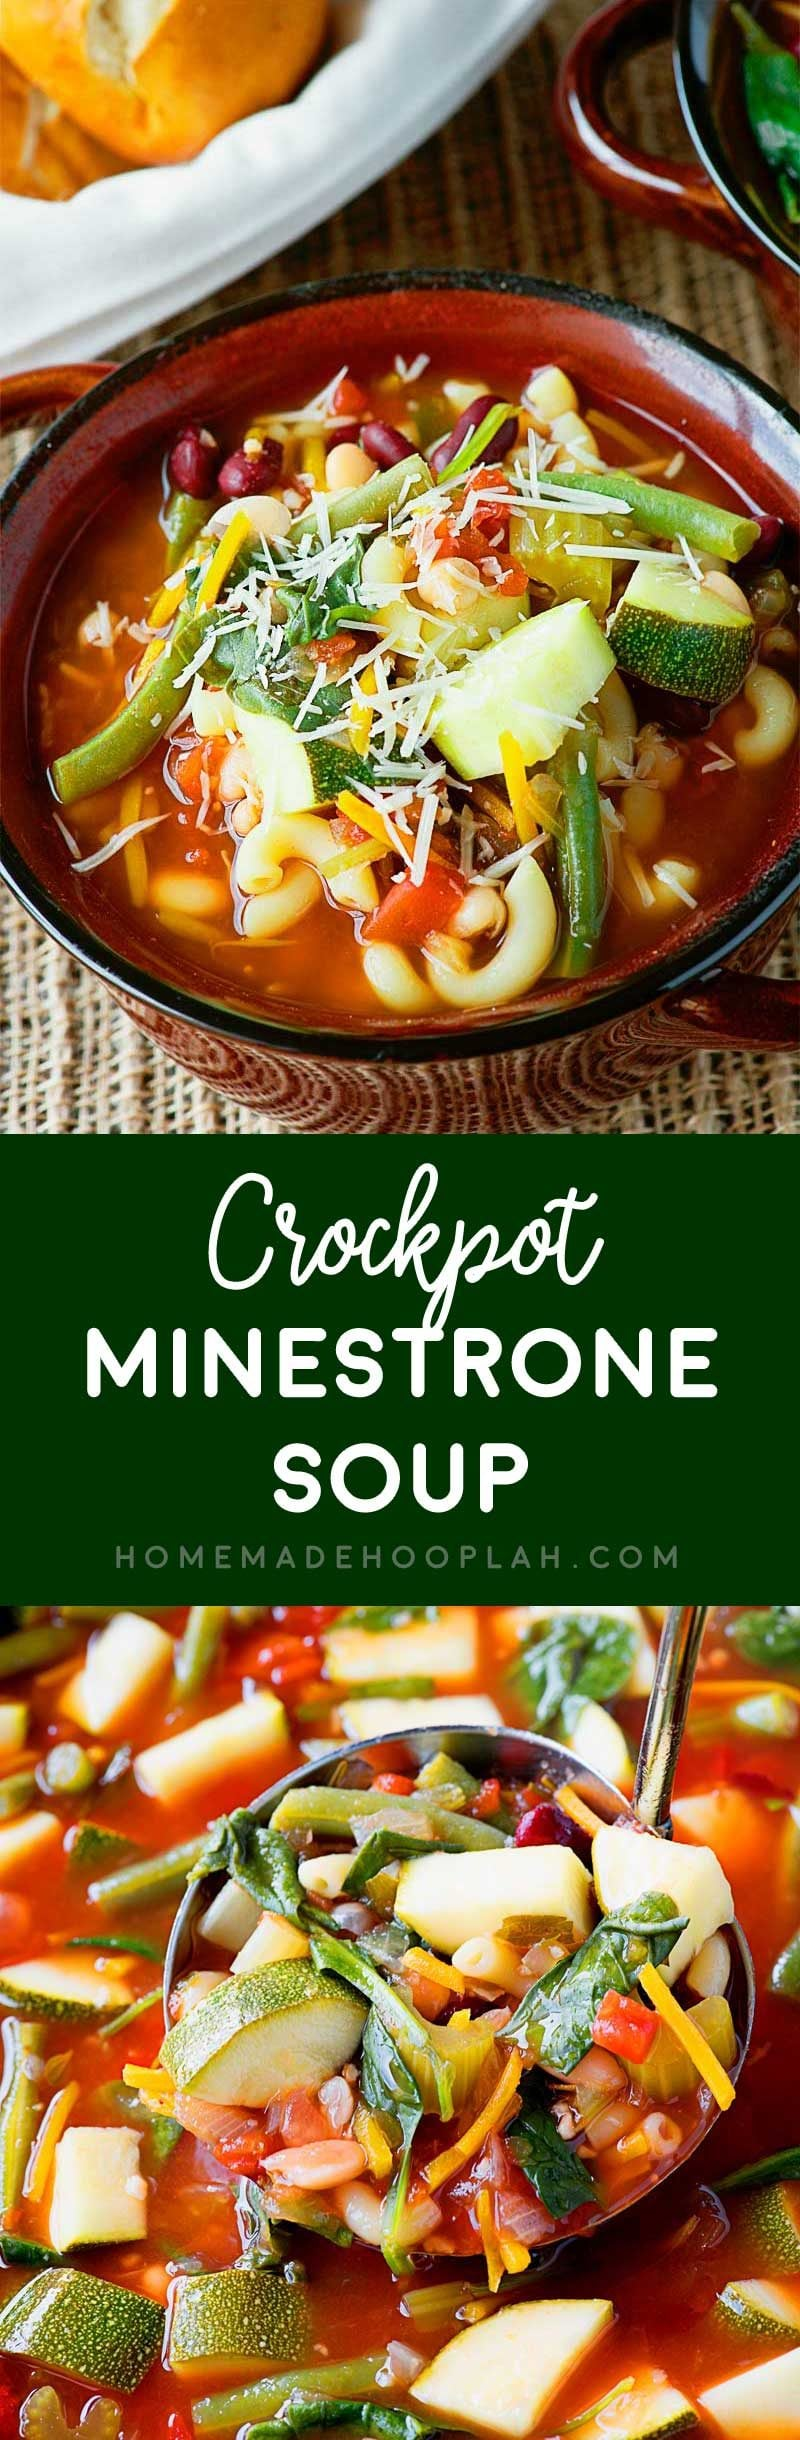 Olive Garden Minestrone Soup Recipe Crock Pot Crock pot minestrone soup homemade hooplah crock pot minestrone soup an easy to make and hearty meatless soup with a melody workwithnaturefo